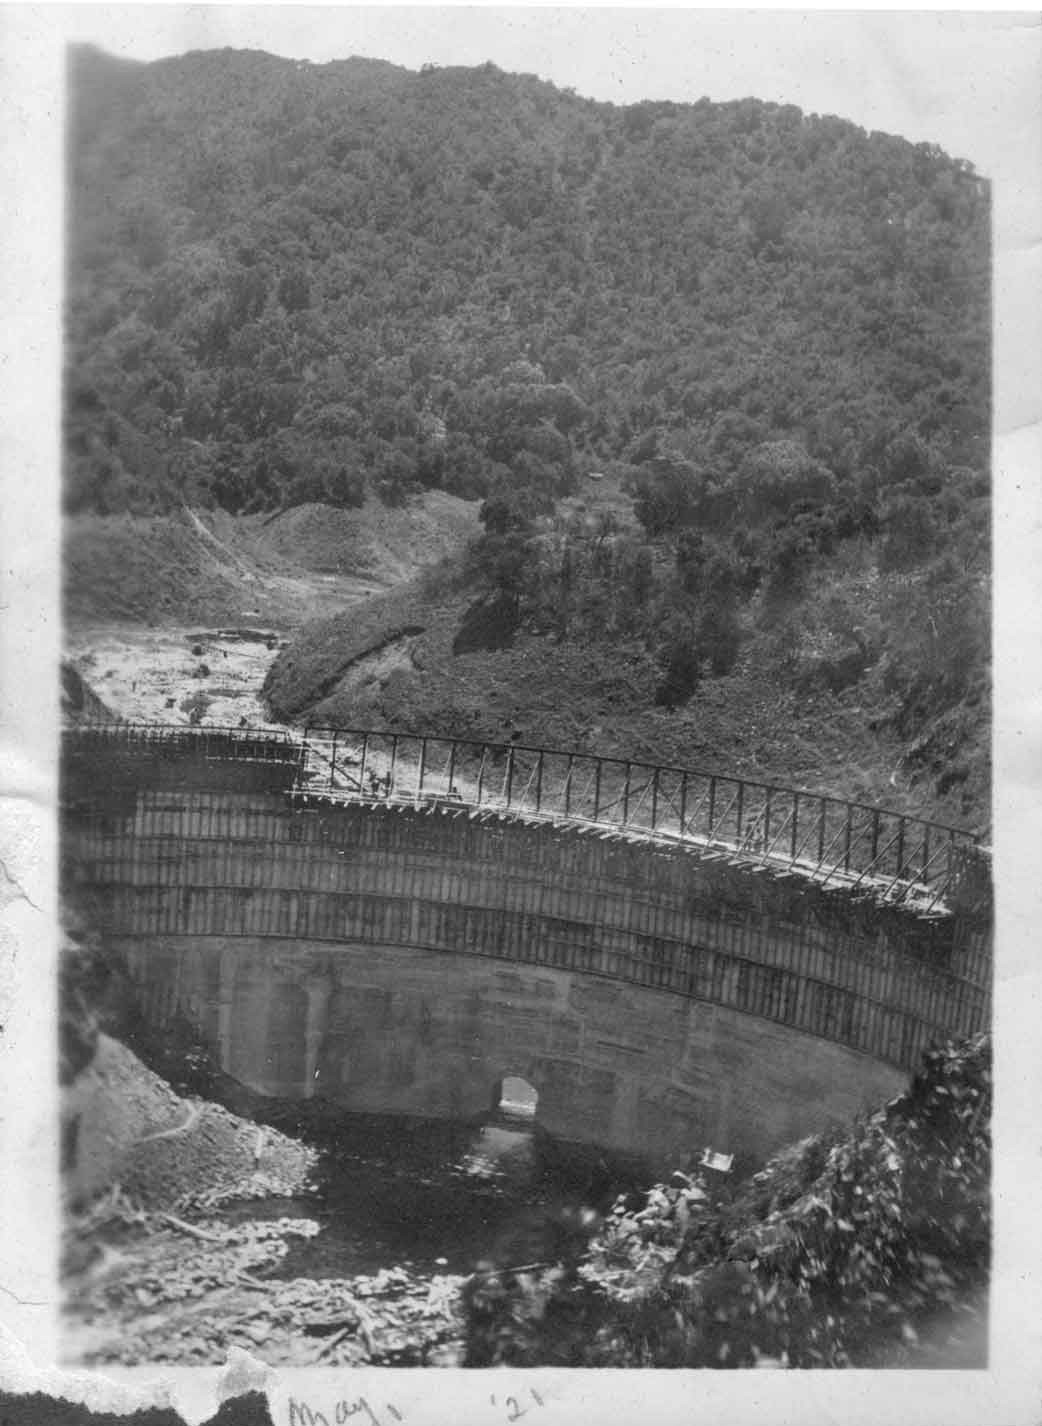 San Clemente Dam being built in 1921